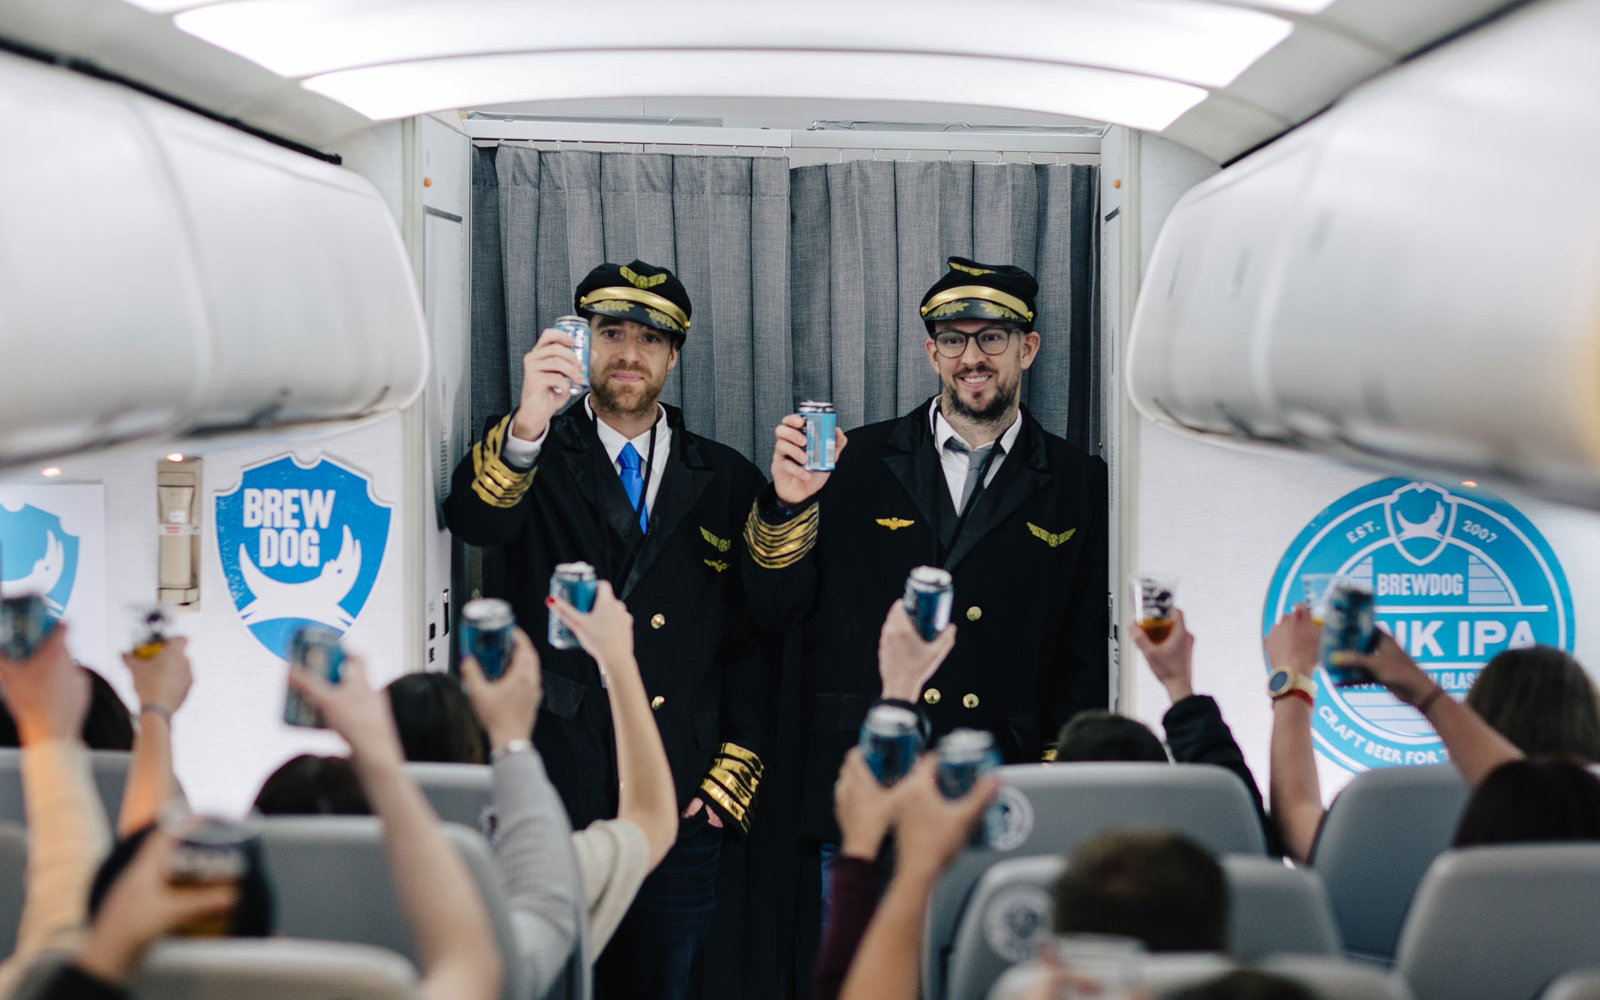 The 'World's First Craft Beer Airline' Just Had Its Inaugural Flight — and You Can Bet the Brews Were Flowing